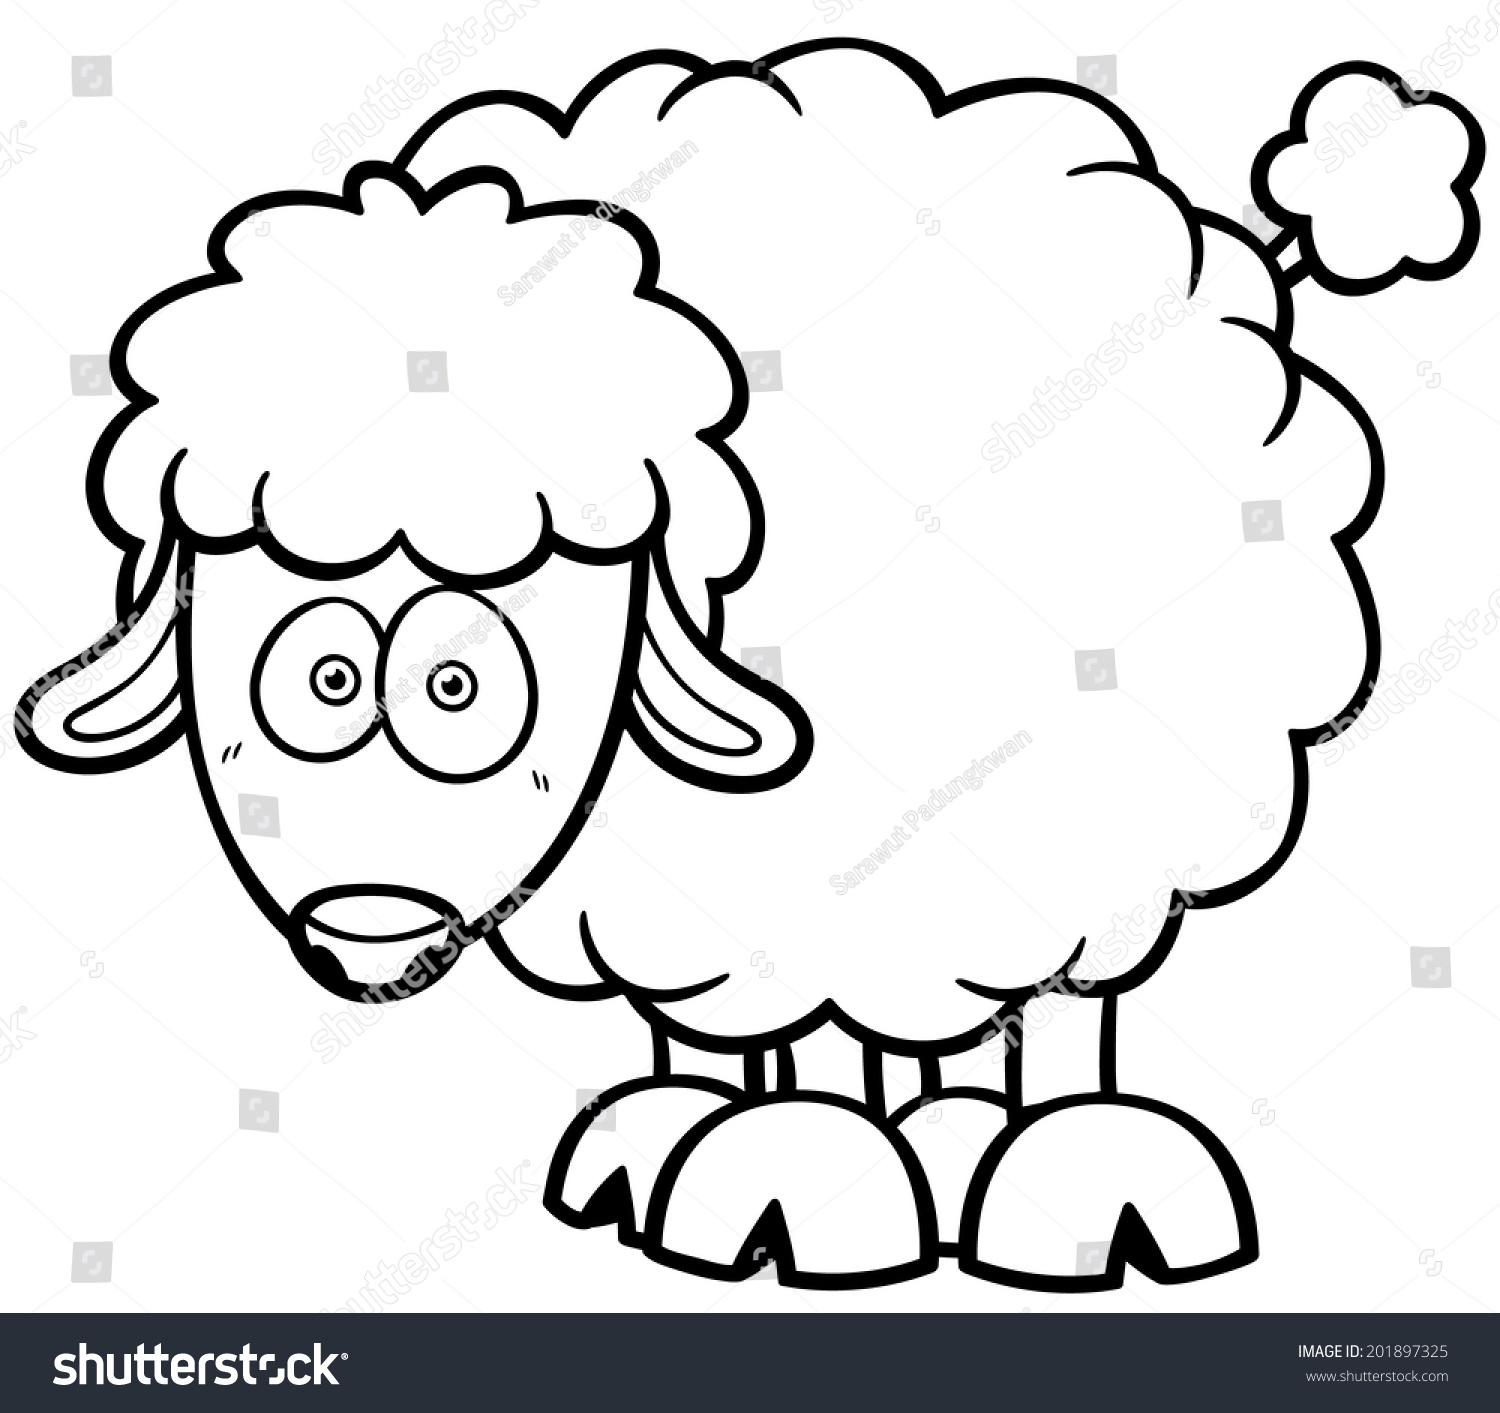 Vector illustration of a cartoon sheep - Coloring book | EZ Canvas